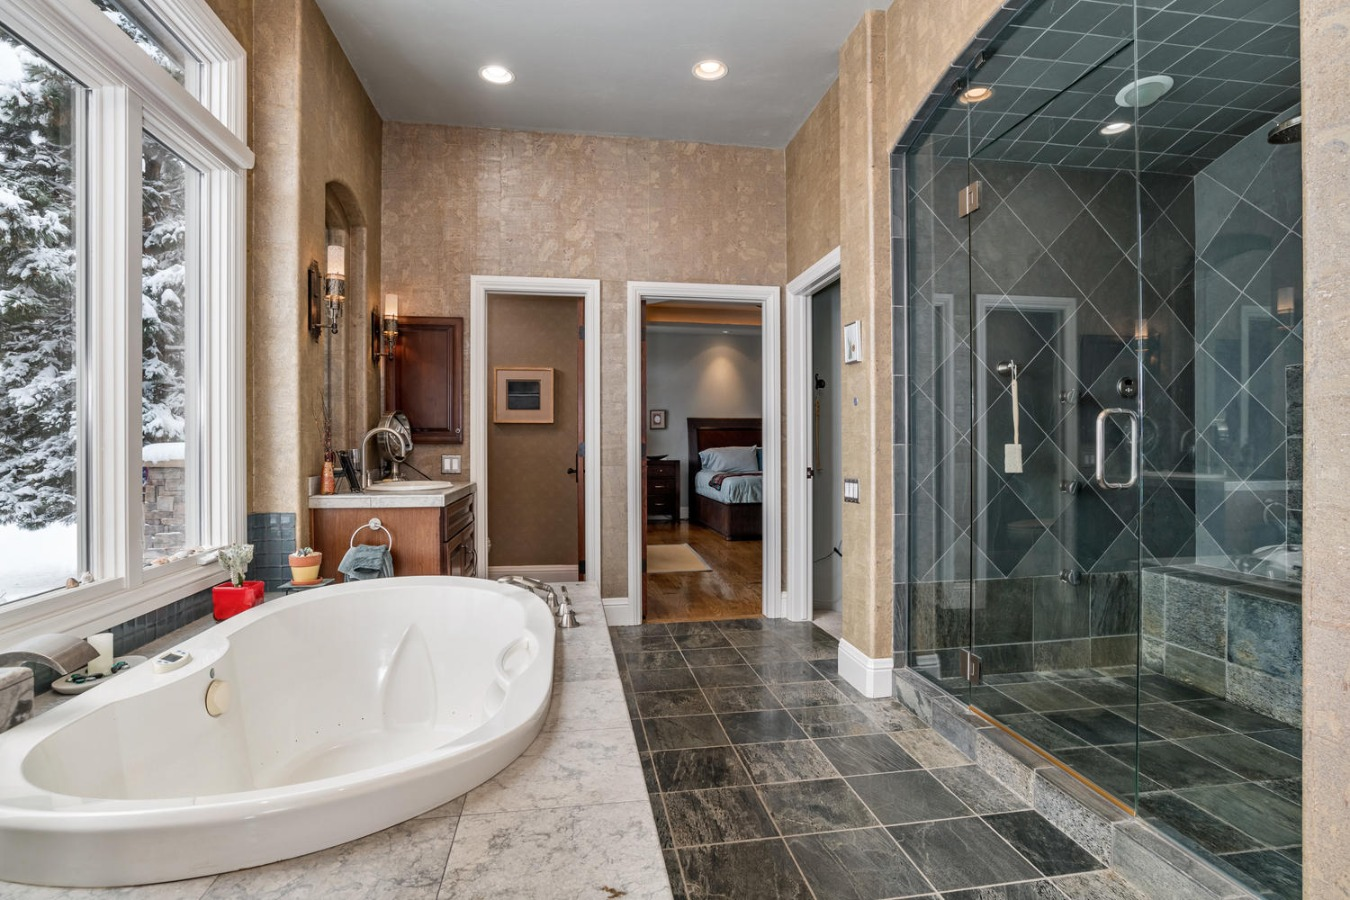 Jetted Soaking Tub & Double Sized Steam Shower